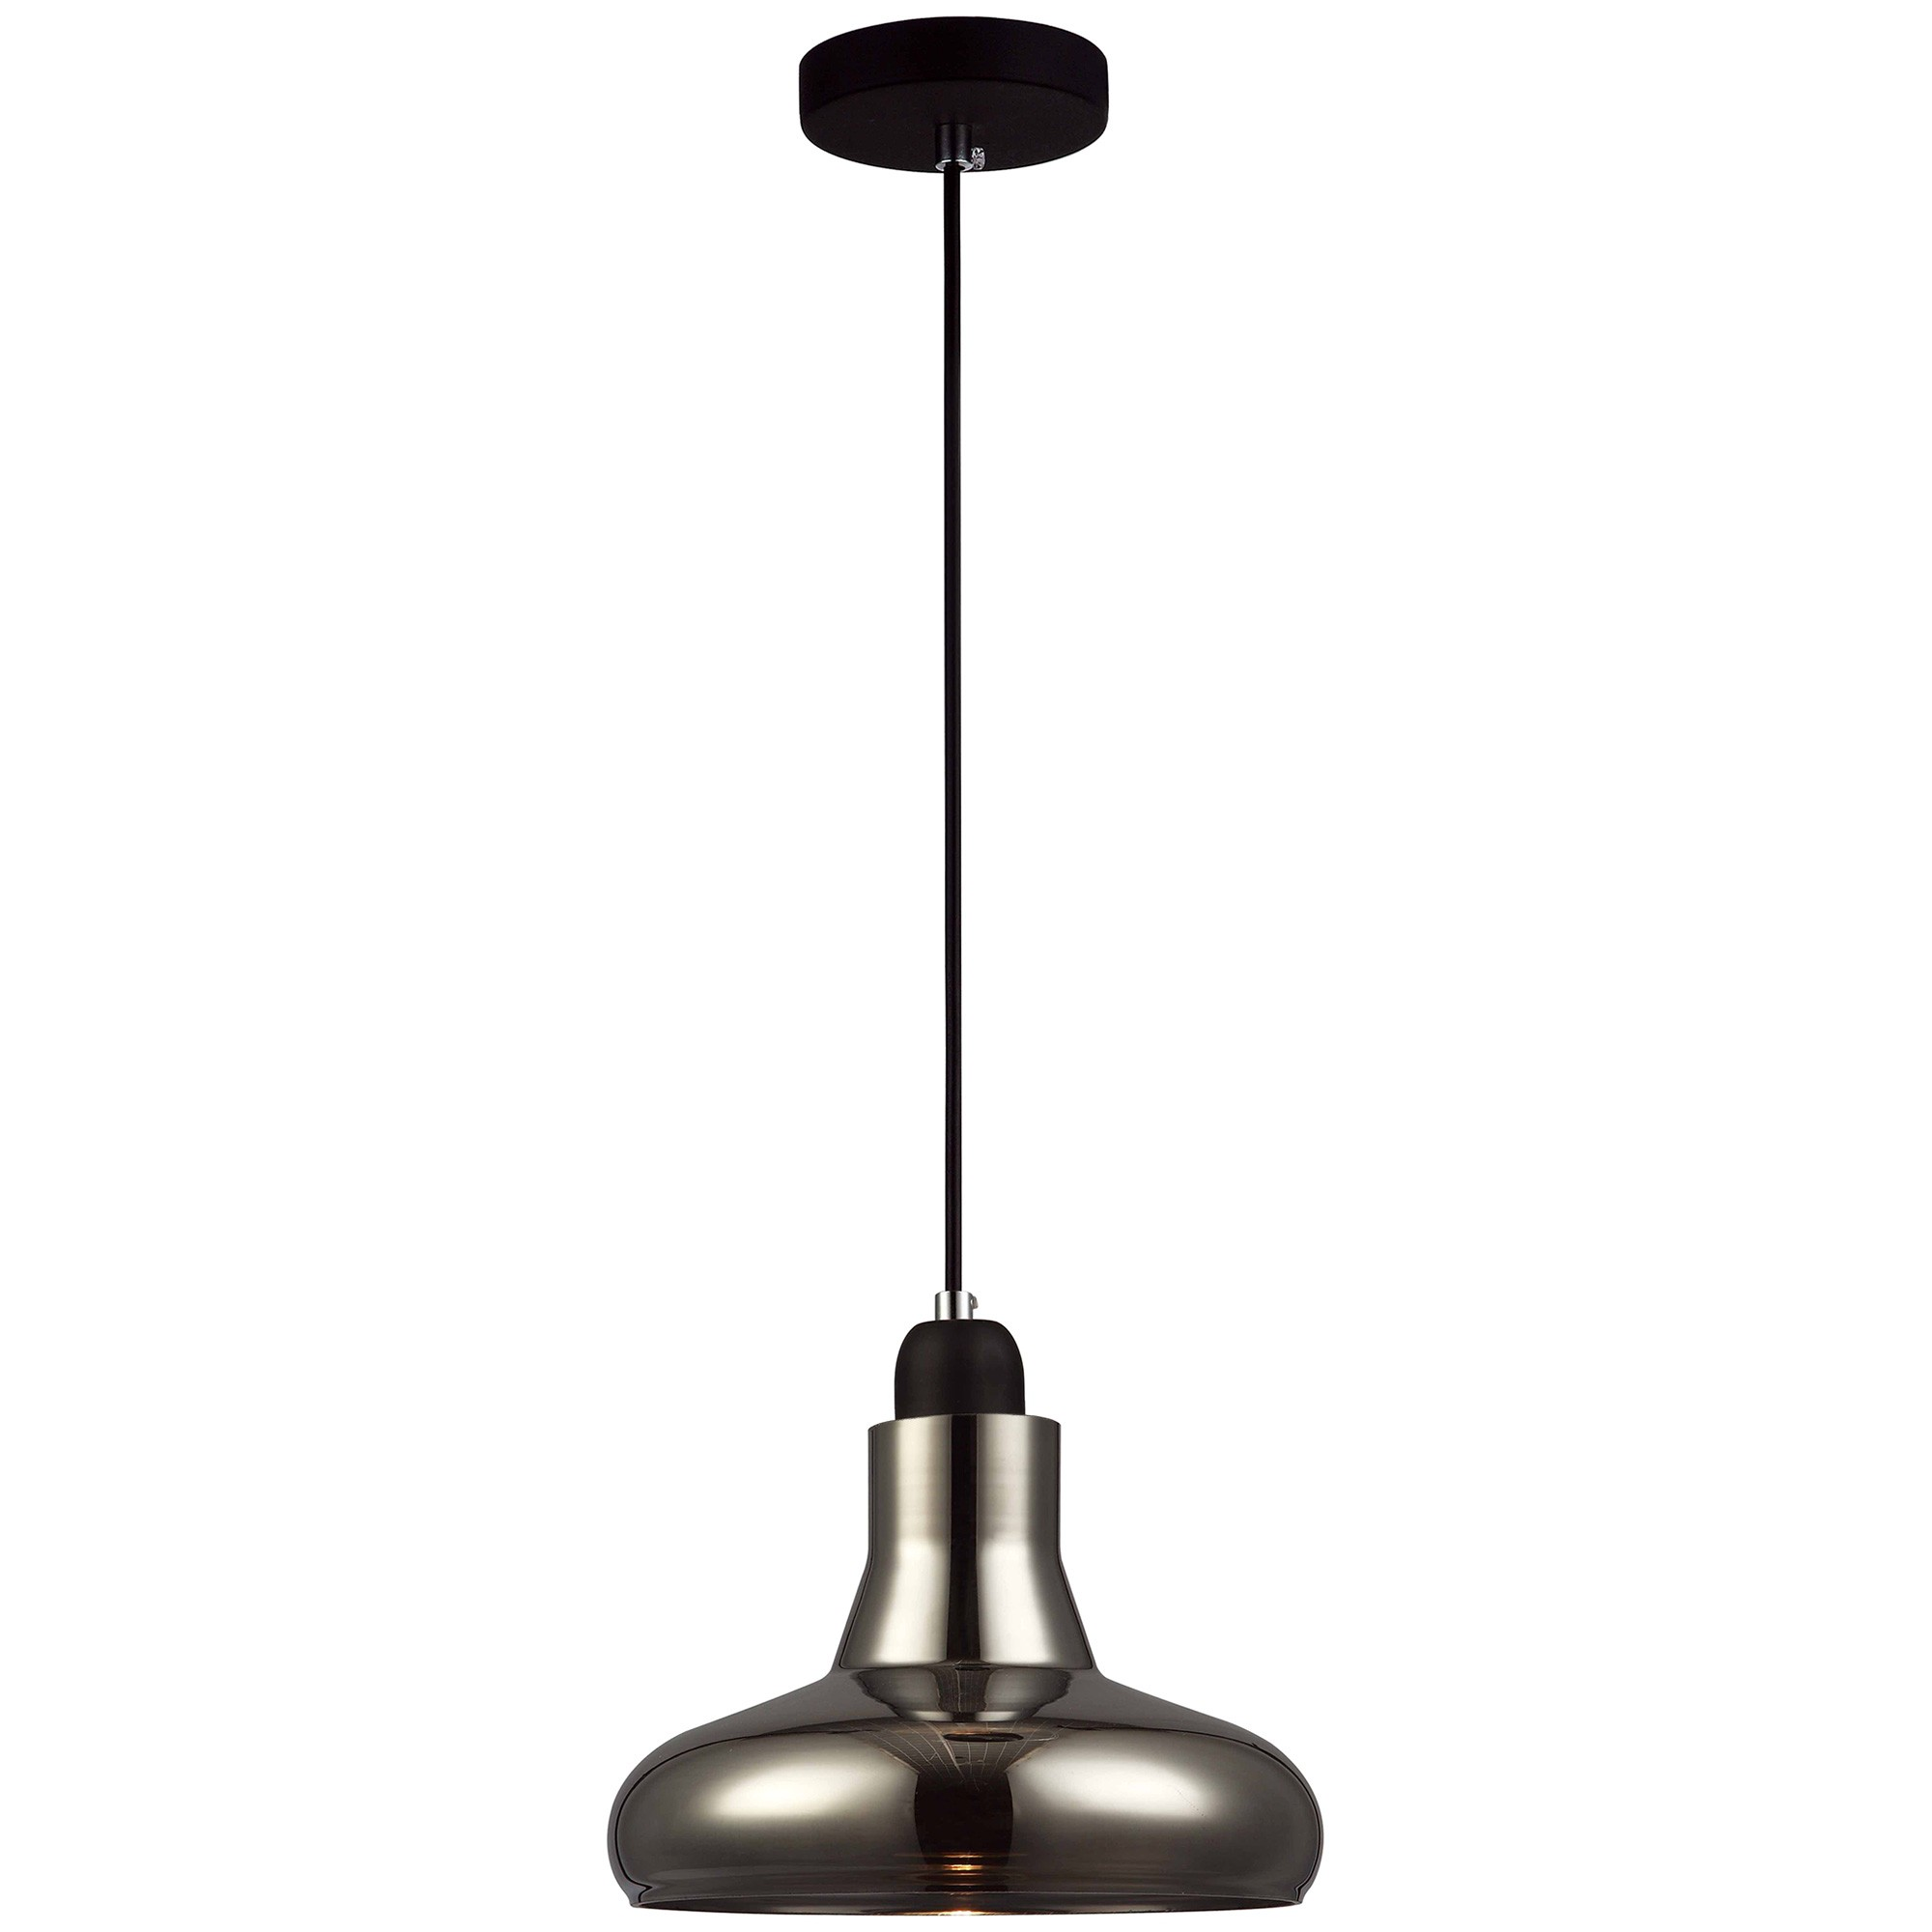 Barrosa Glass Pendant Light, Dome